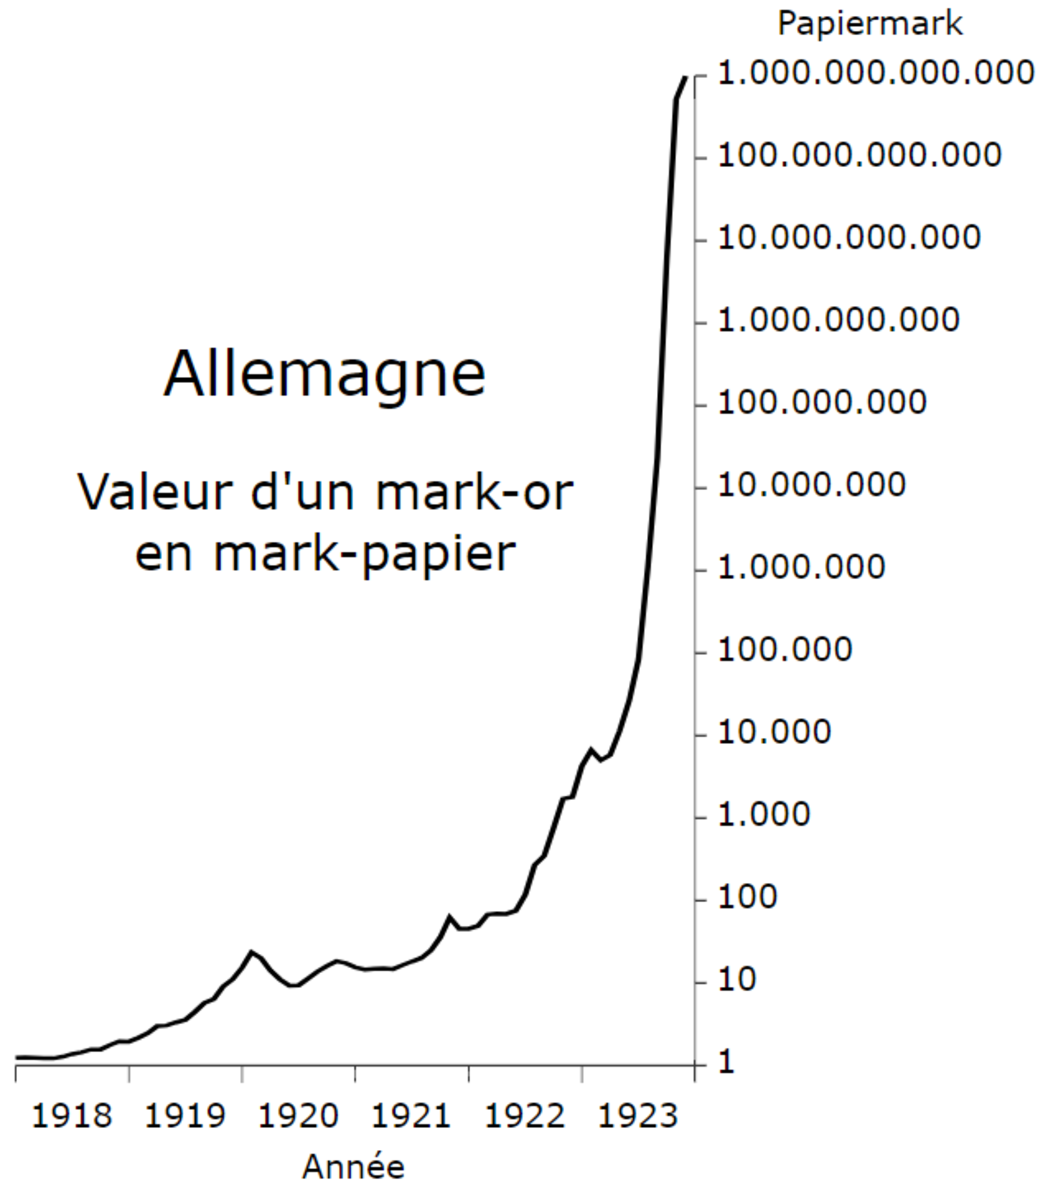 Note that Weimar hyper-inflation didn't begin until 1922 : during the proceeding years, the value of the German currency had been stable or actually improved.